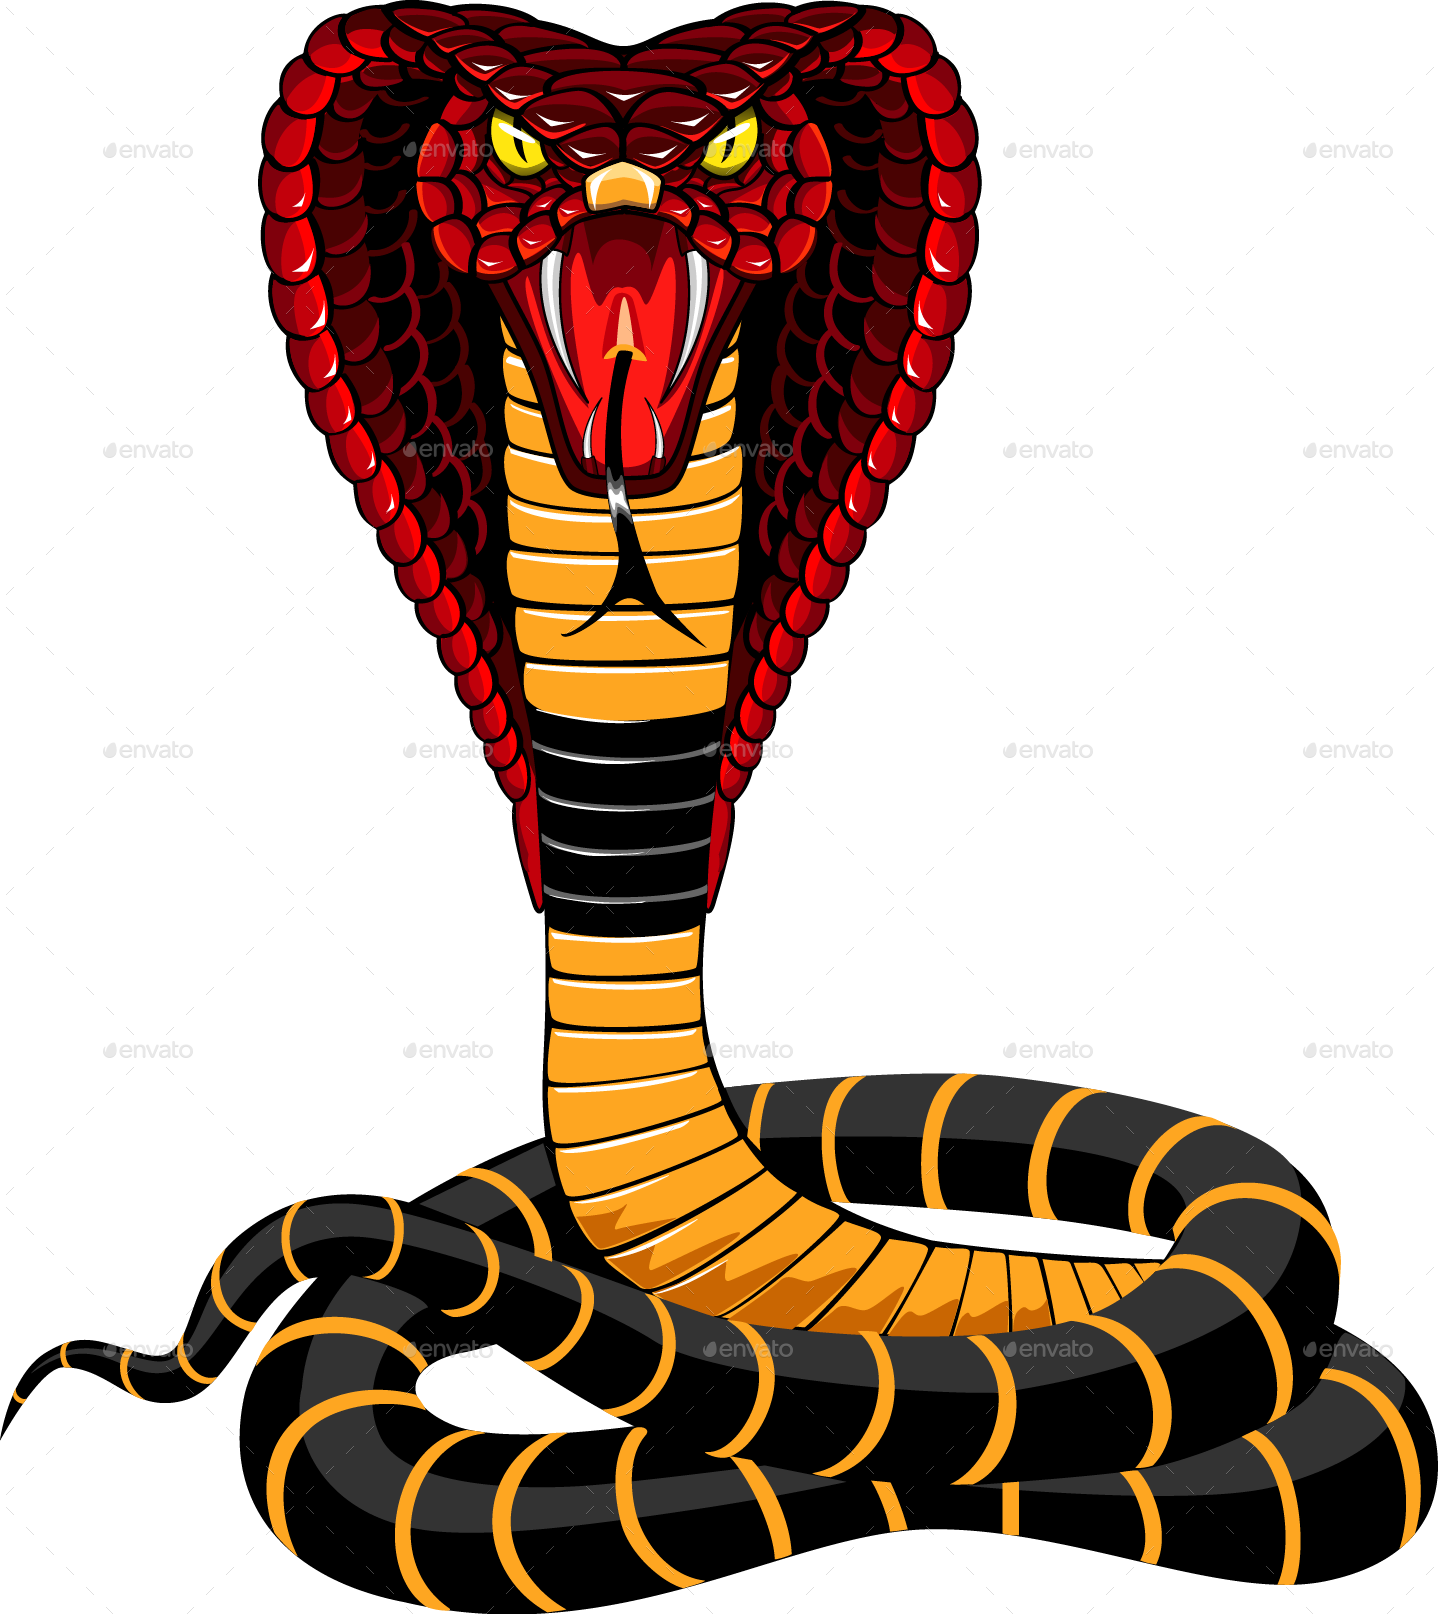 Clipart snake wild animal. Cobra illustration by ashmarka